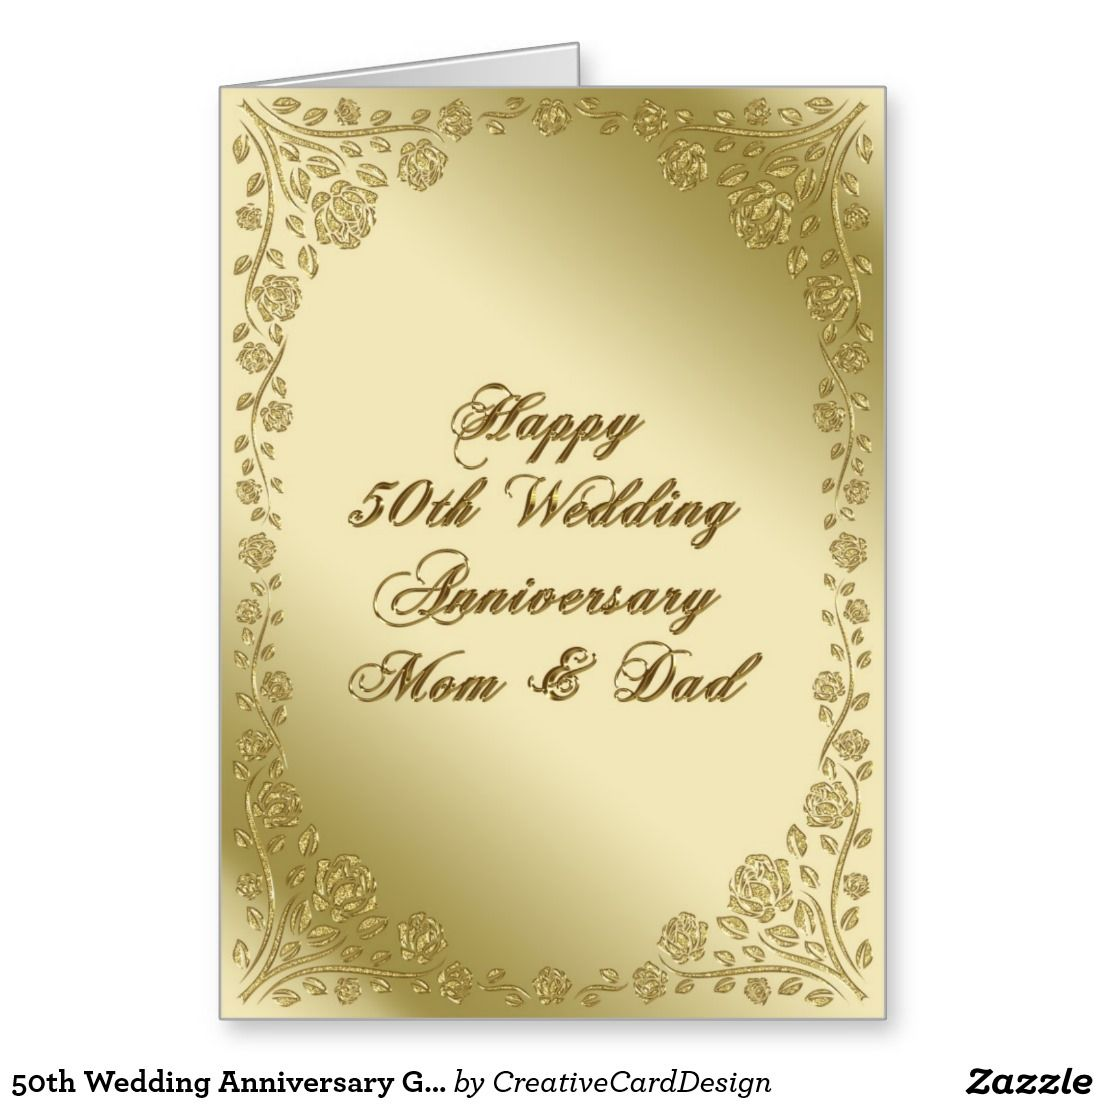 50th wedding anniversary greeting card wedding anniversary 50th wedding anniversary greeting card m4hsunfo